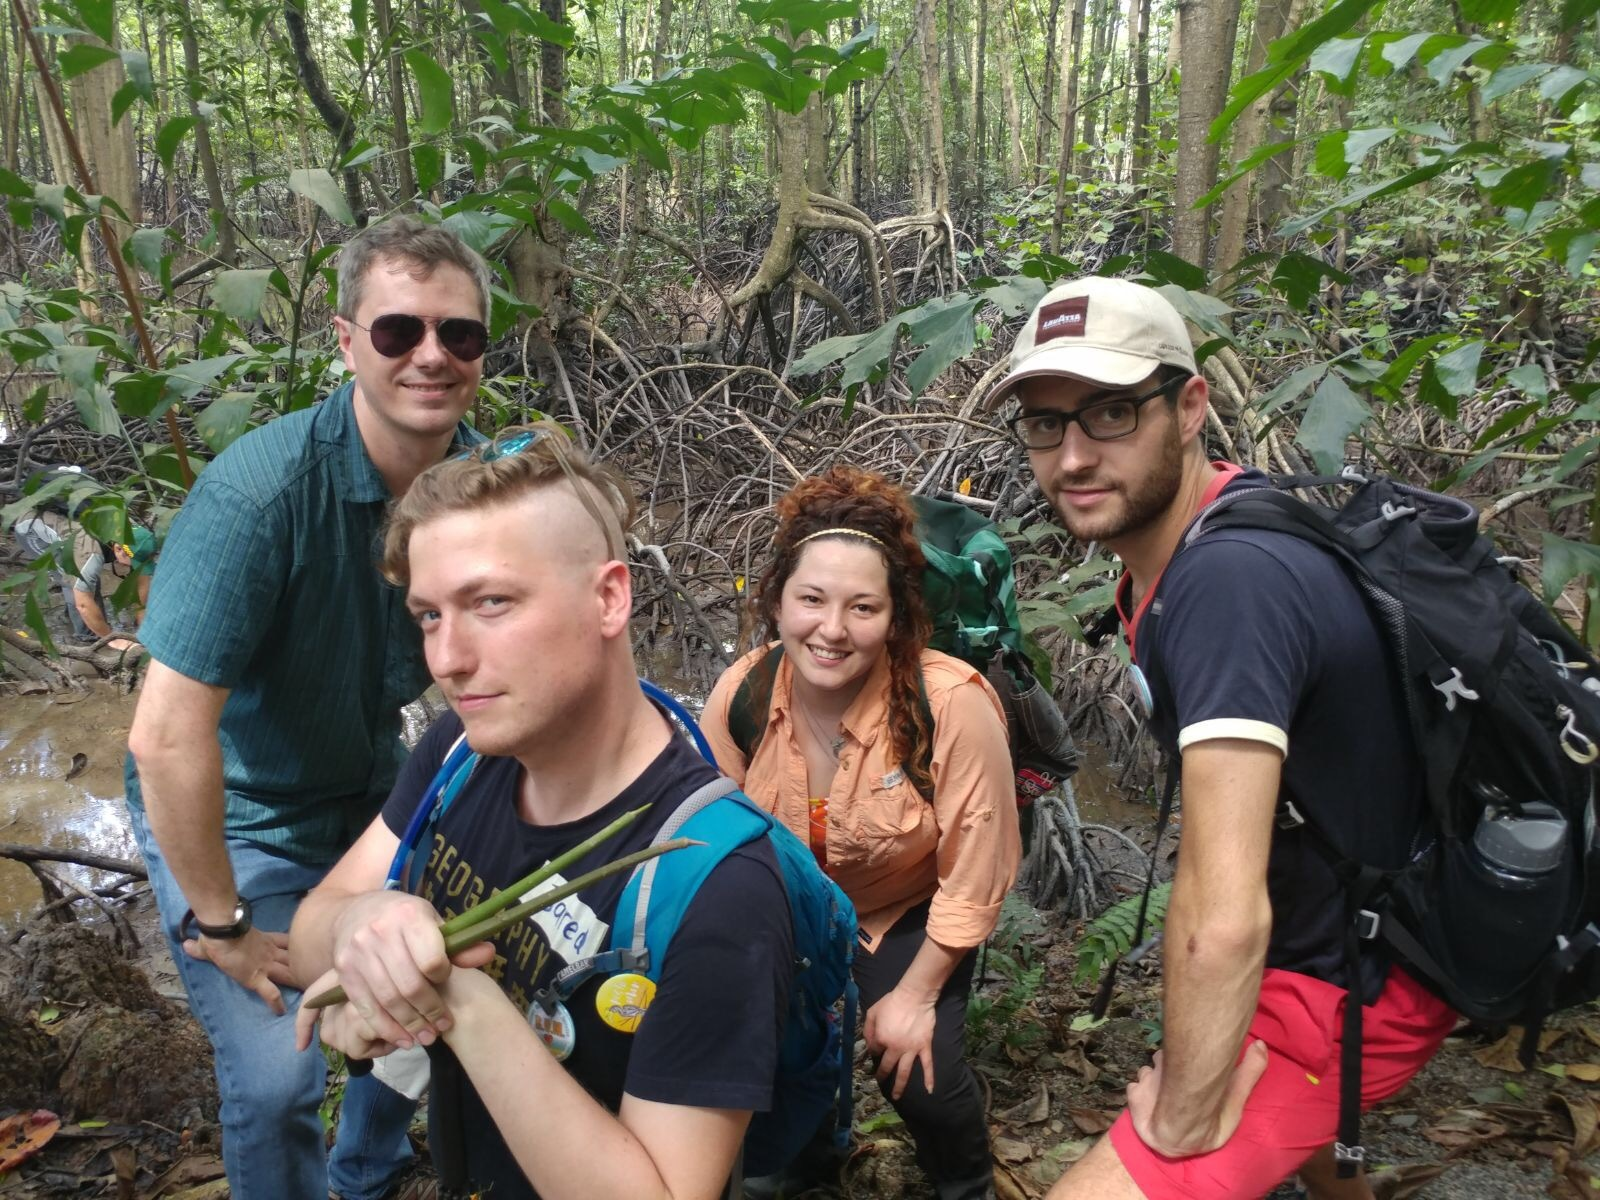 The Mangrove Lab celebrate World Wetlands Day...in a mangrove.